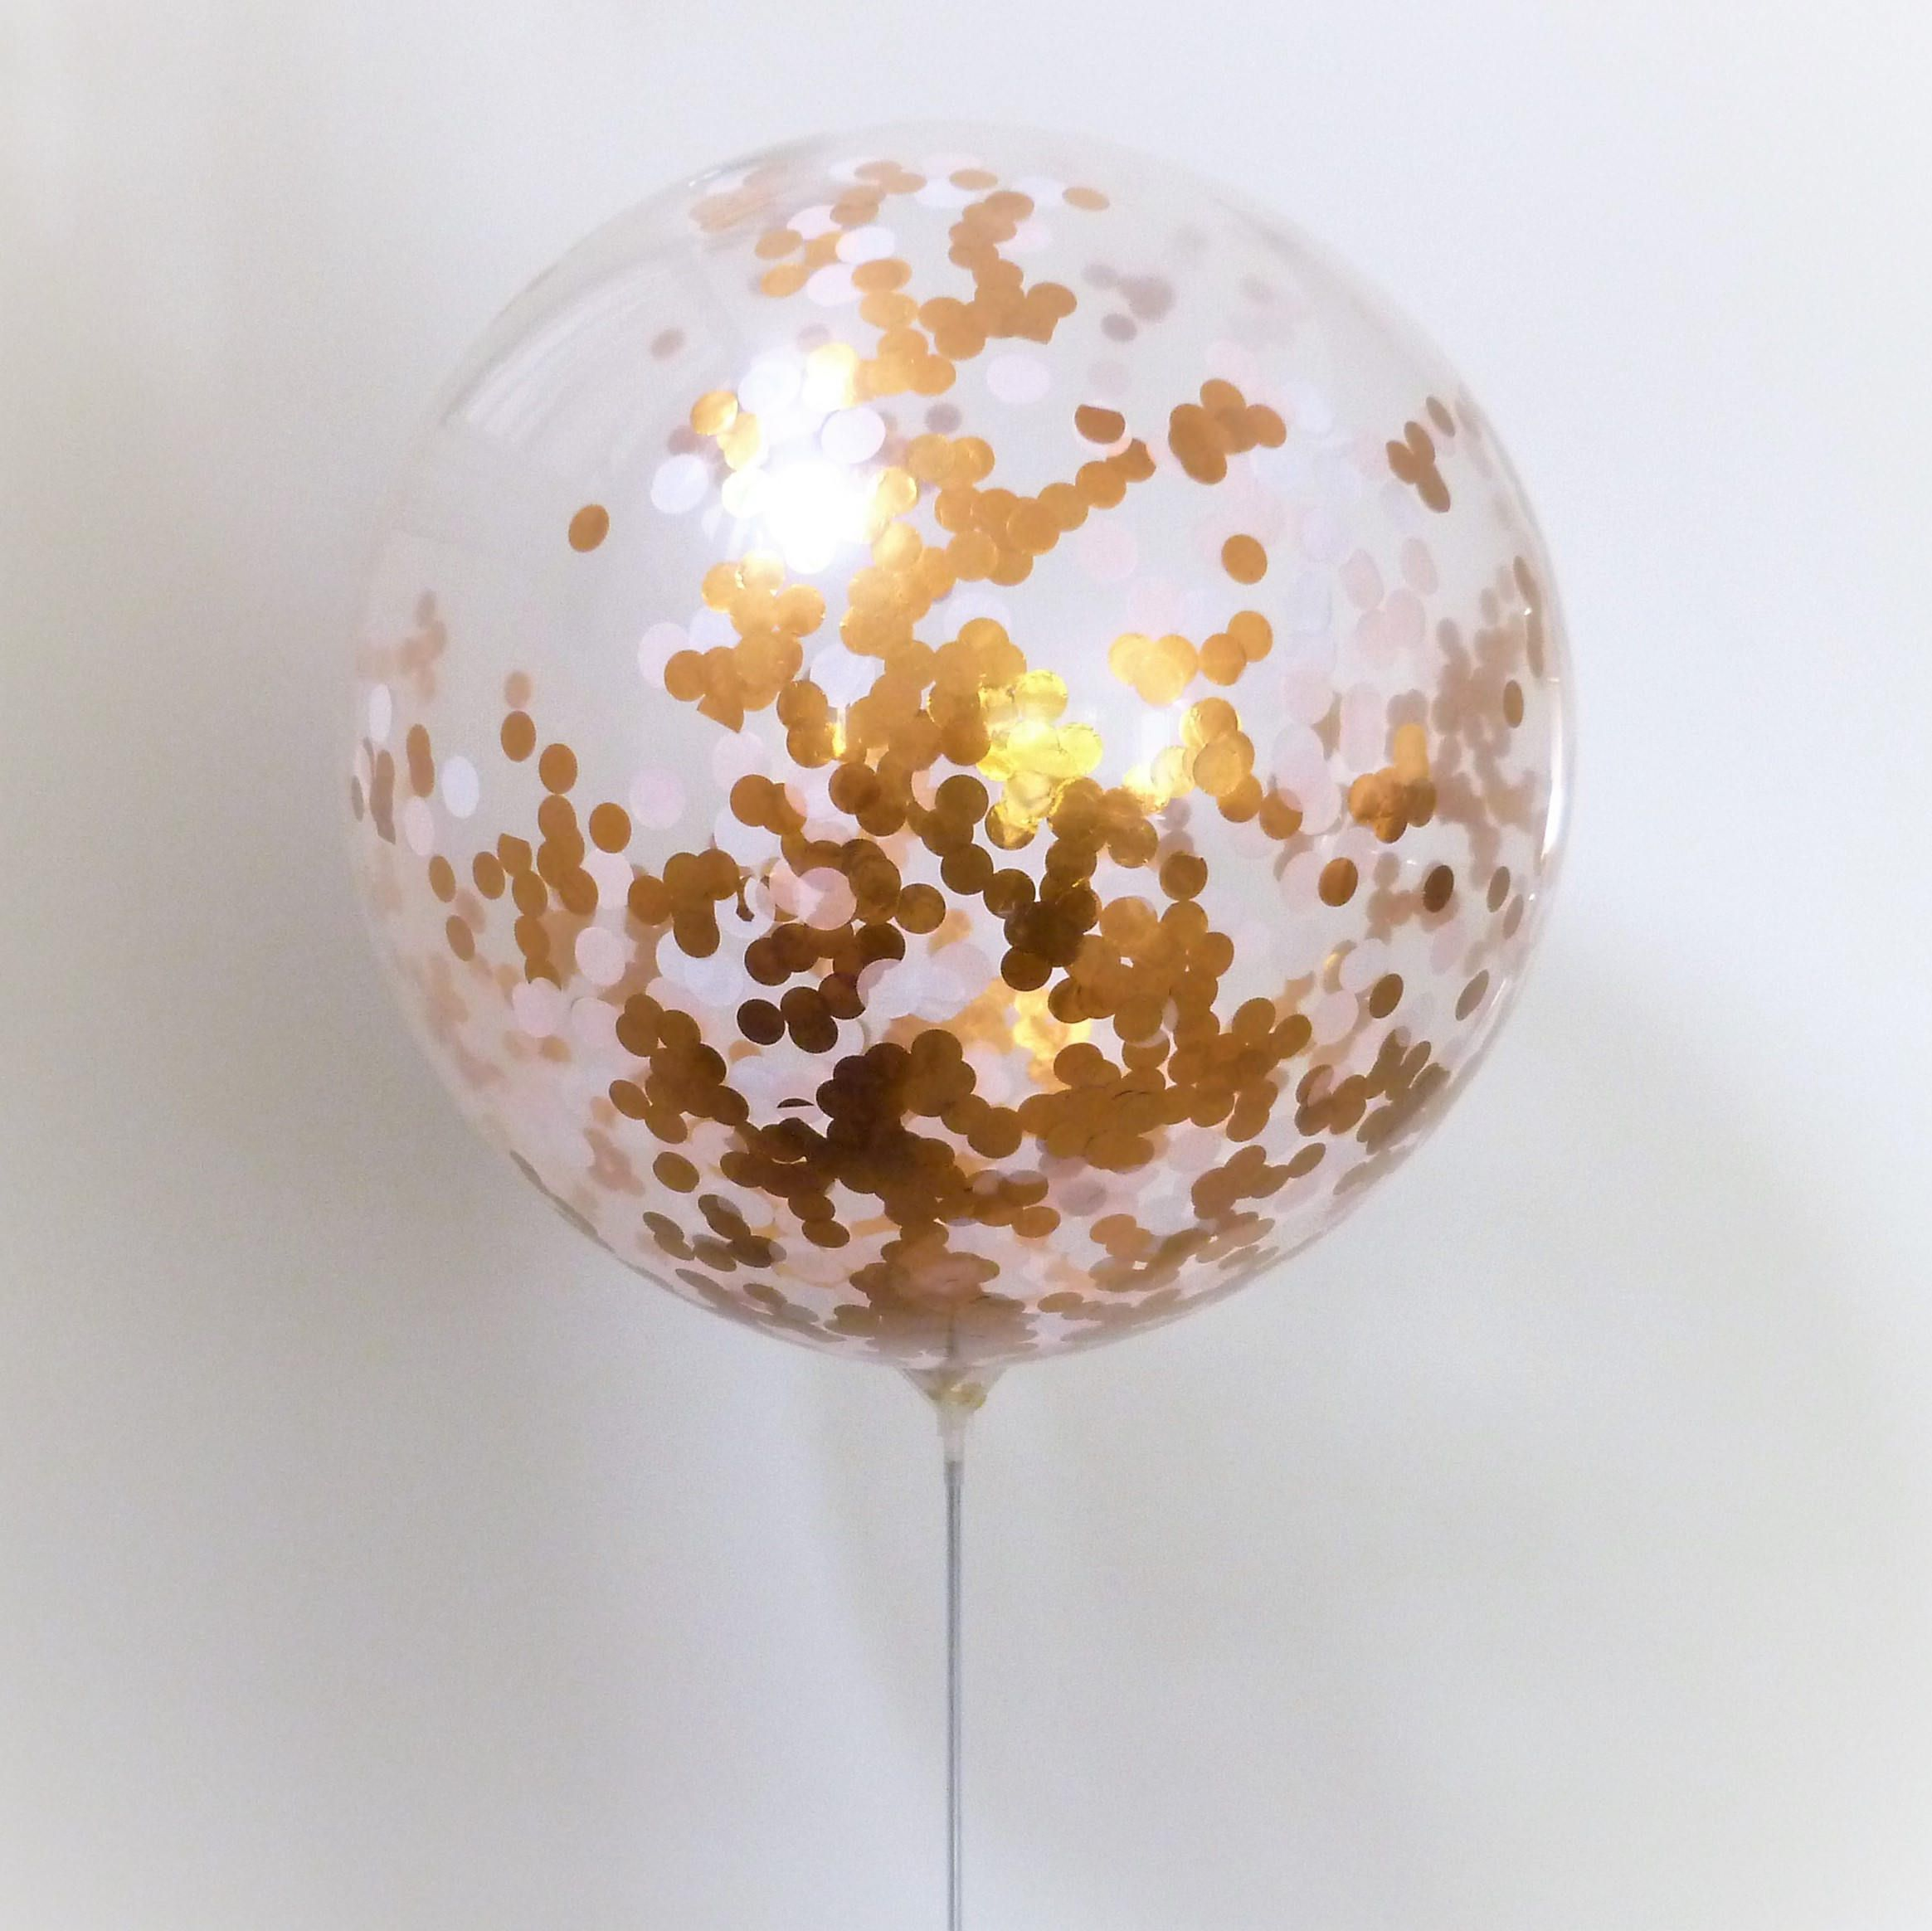 Set of 2 Confetti Balloon Giant Silver and White 60cm clear latex